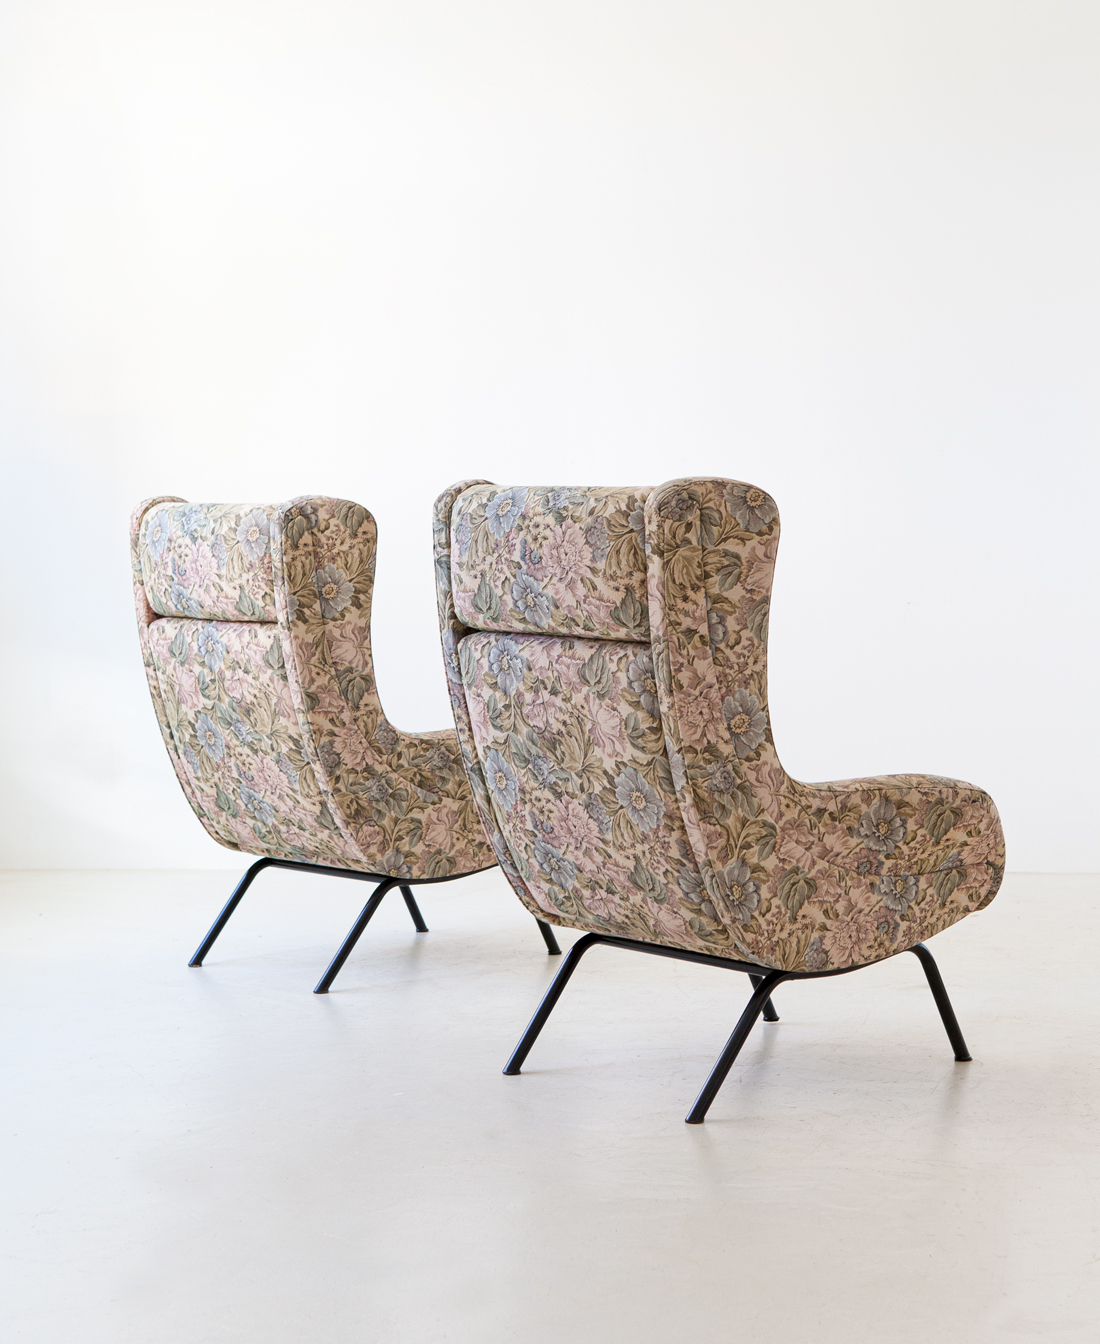 pair-of-italian-lounge-armchairs-with-ears-8-se326